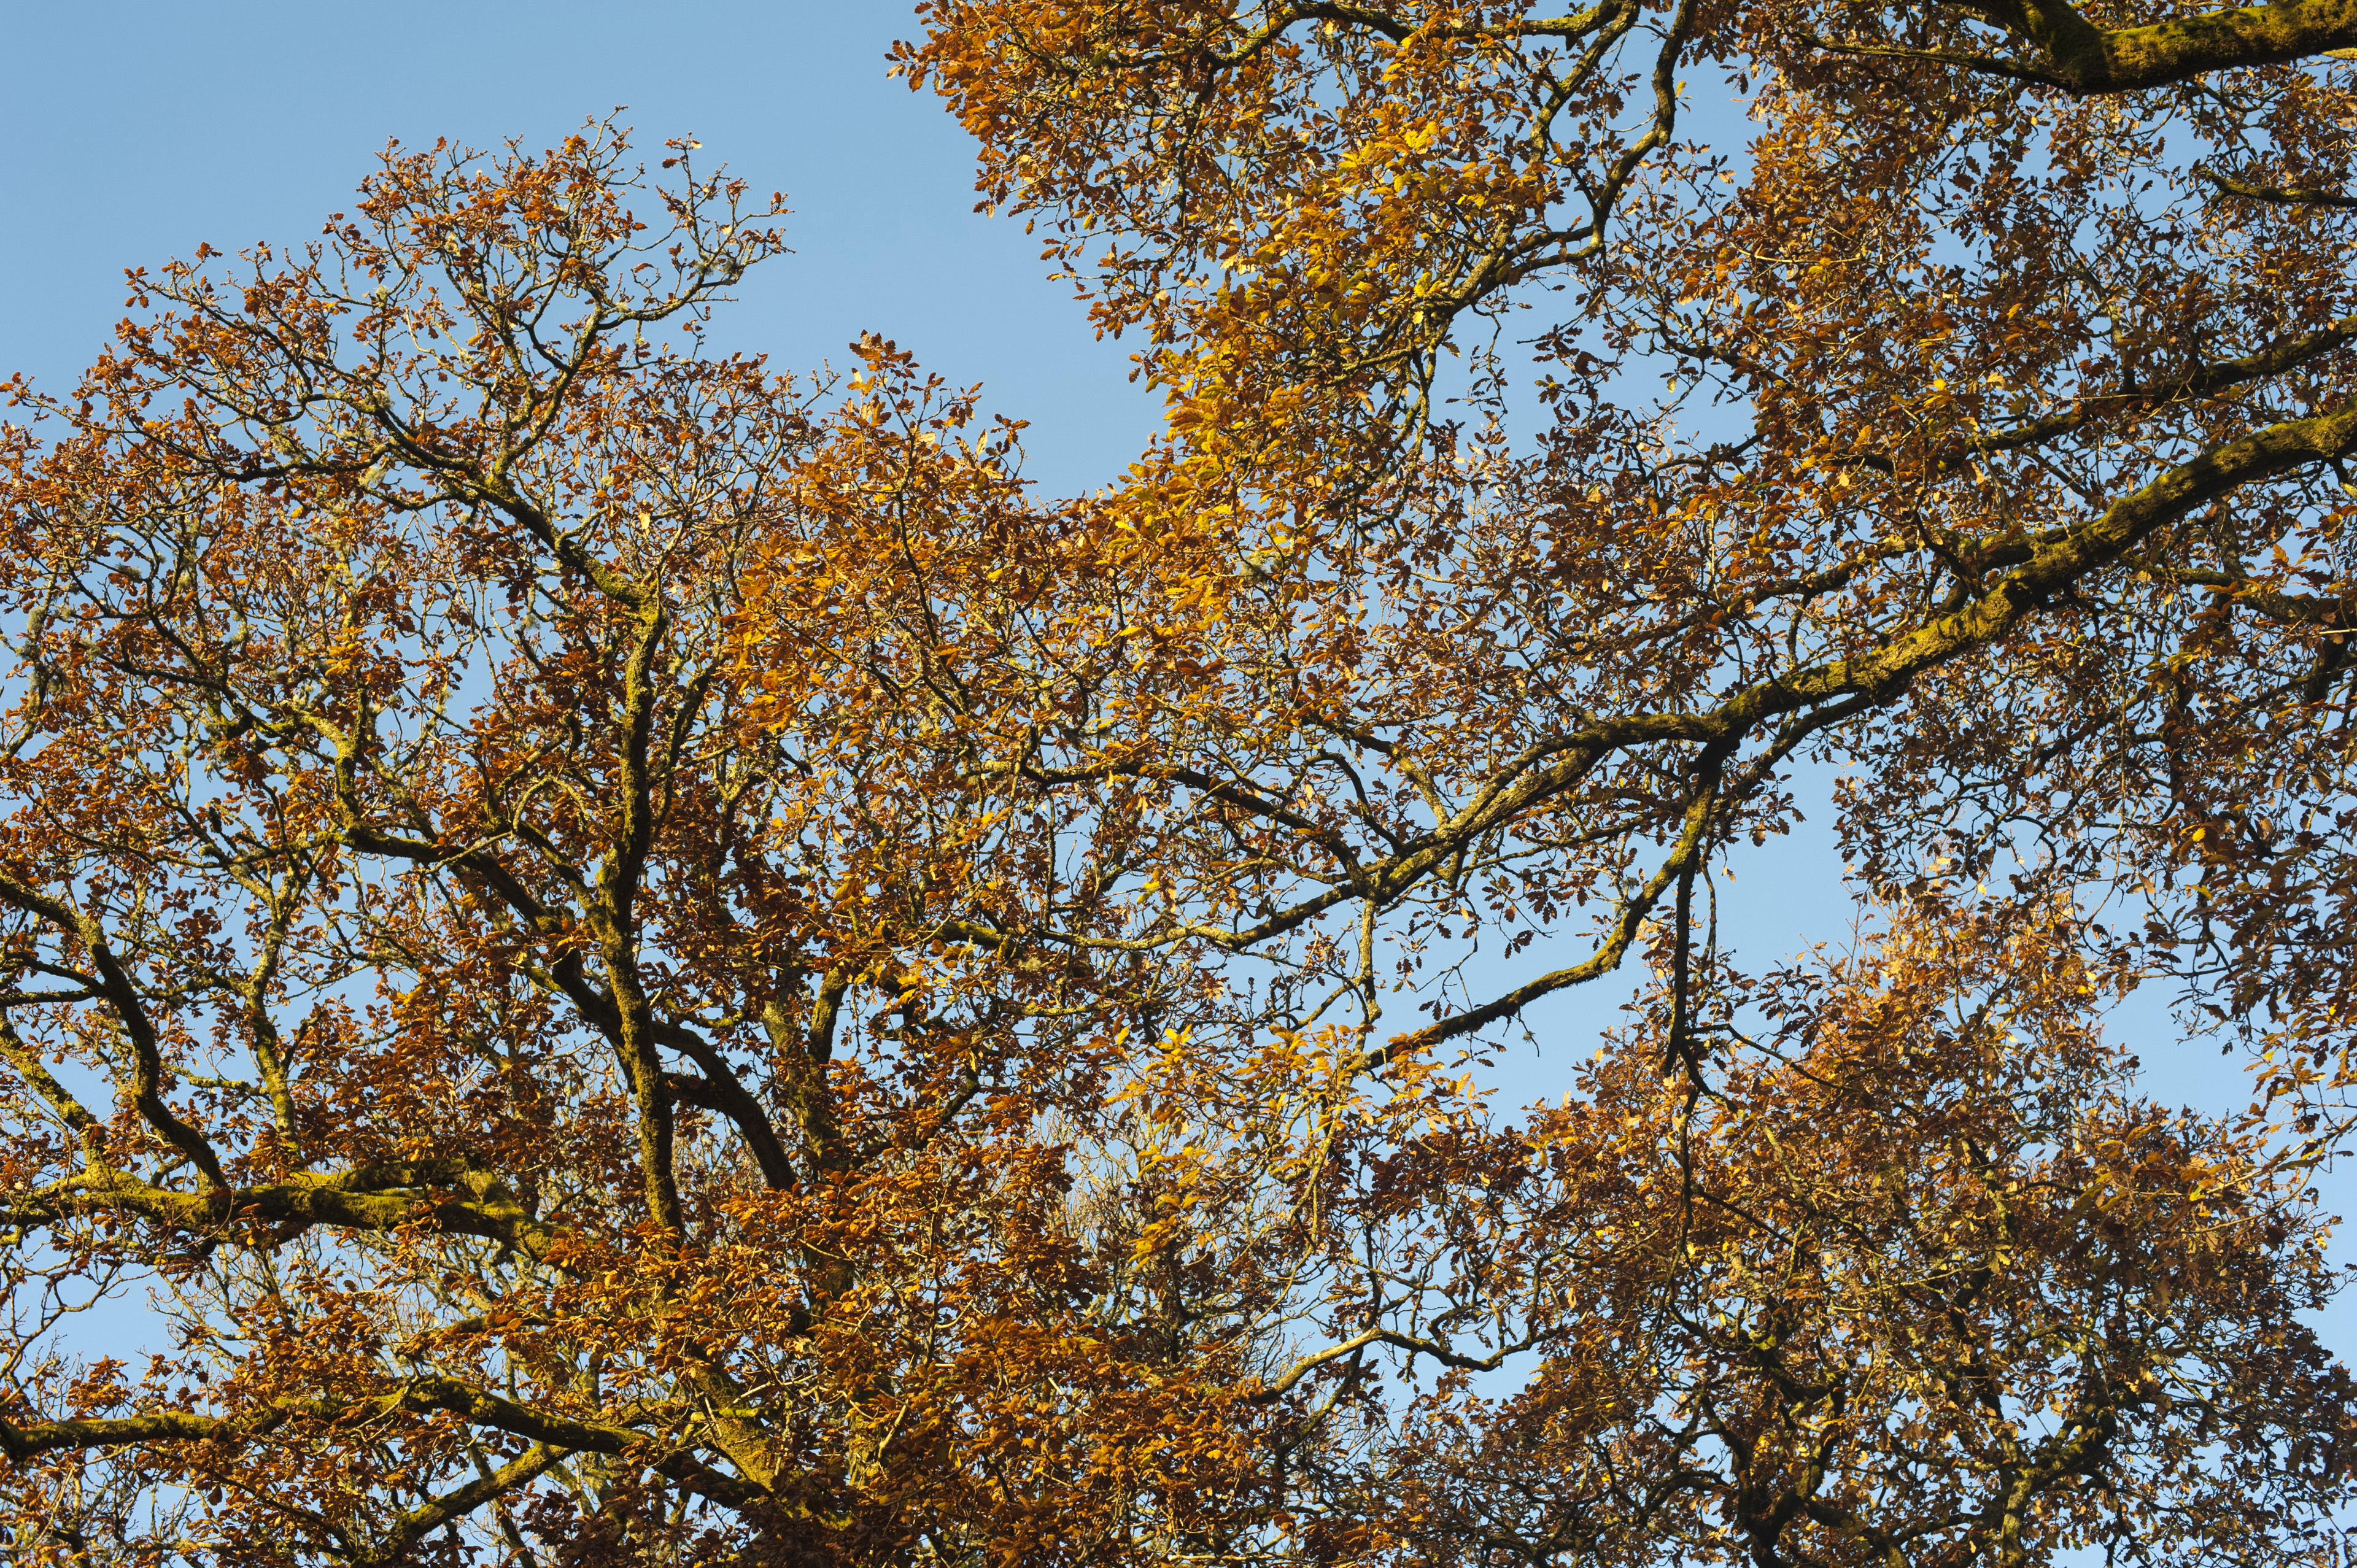 Colorful yellow and orange foliage on autumn trees symbolising the changing seasons and life cycles of nature